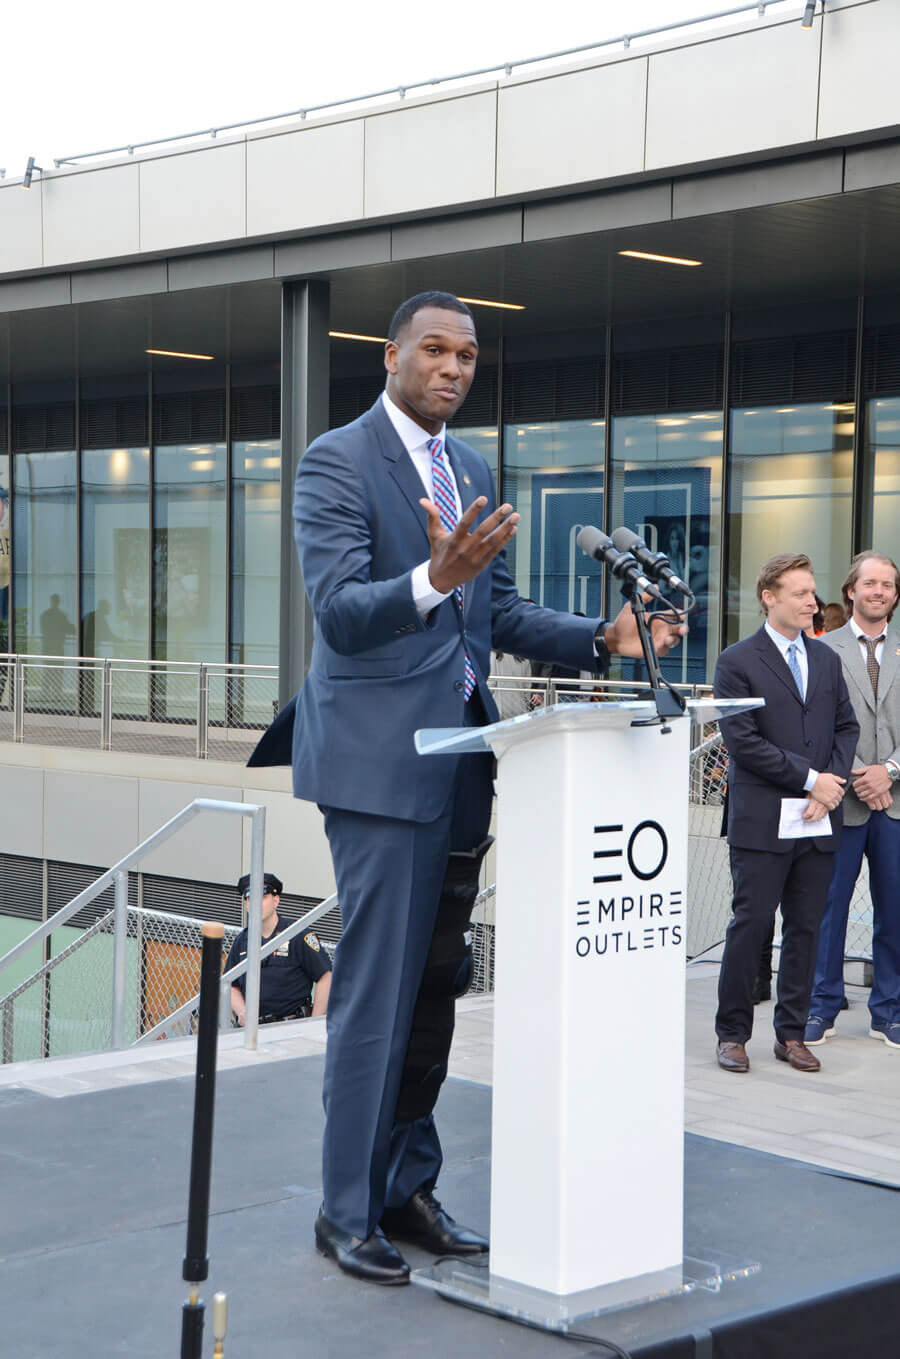 A speaker at an Empire Outlets event